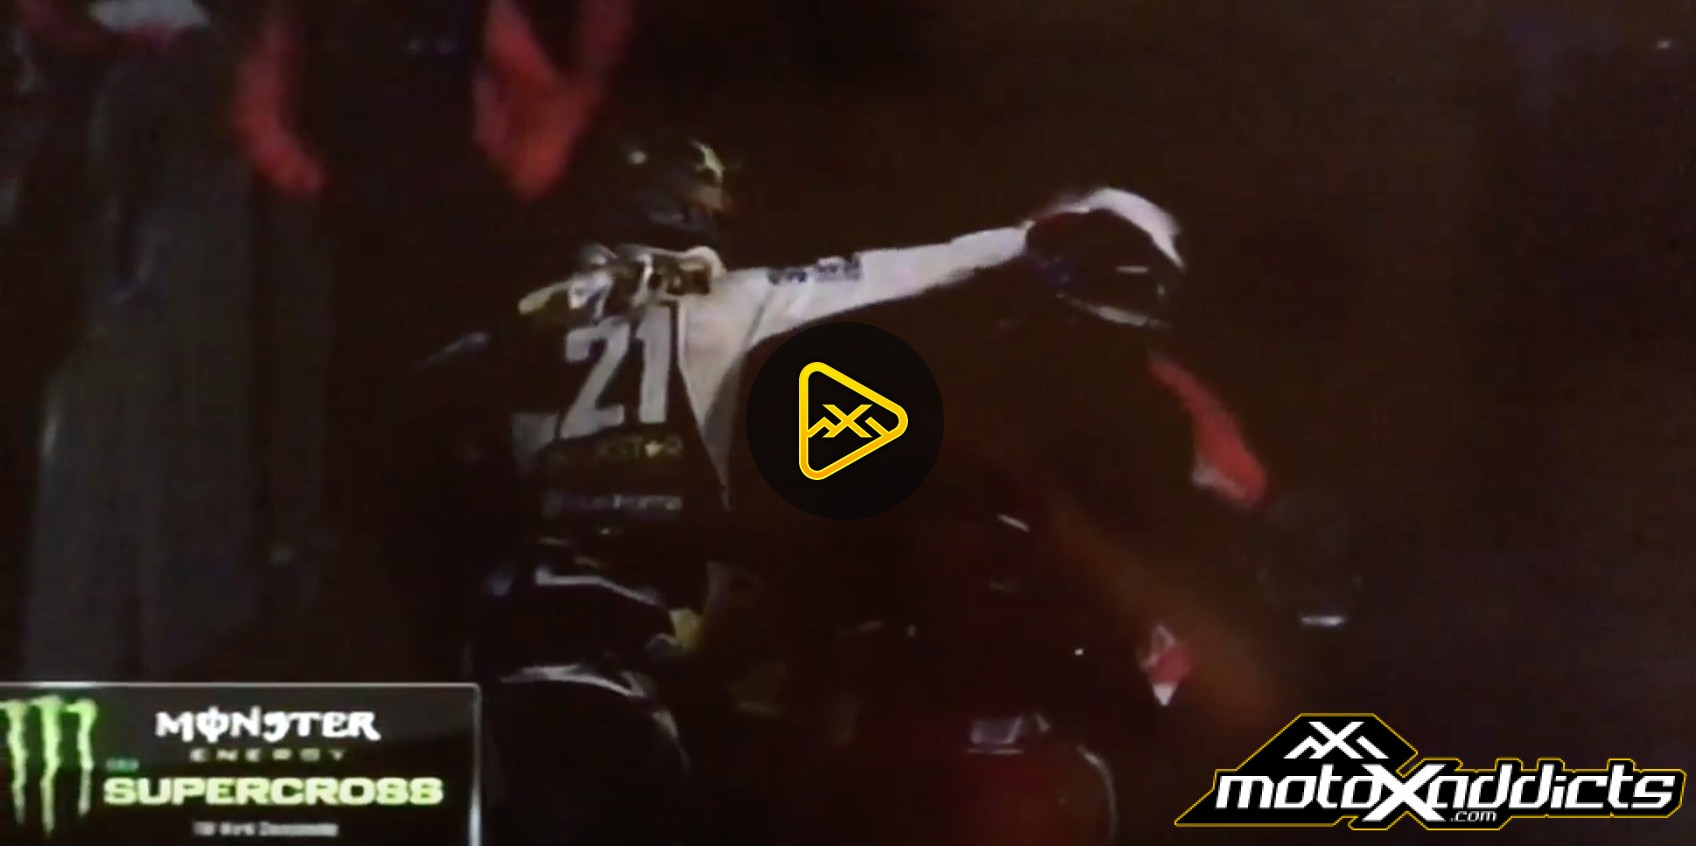 Jason Anderson Punches Vince Friese & Crashes – 2017 A2 SX